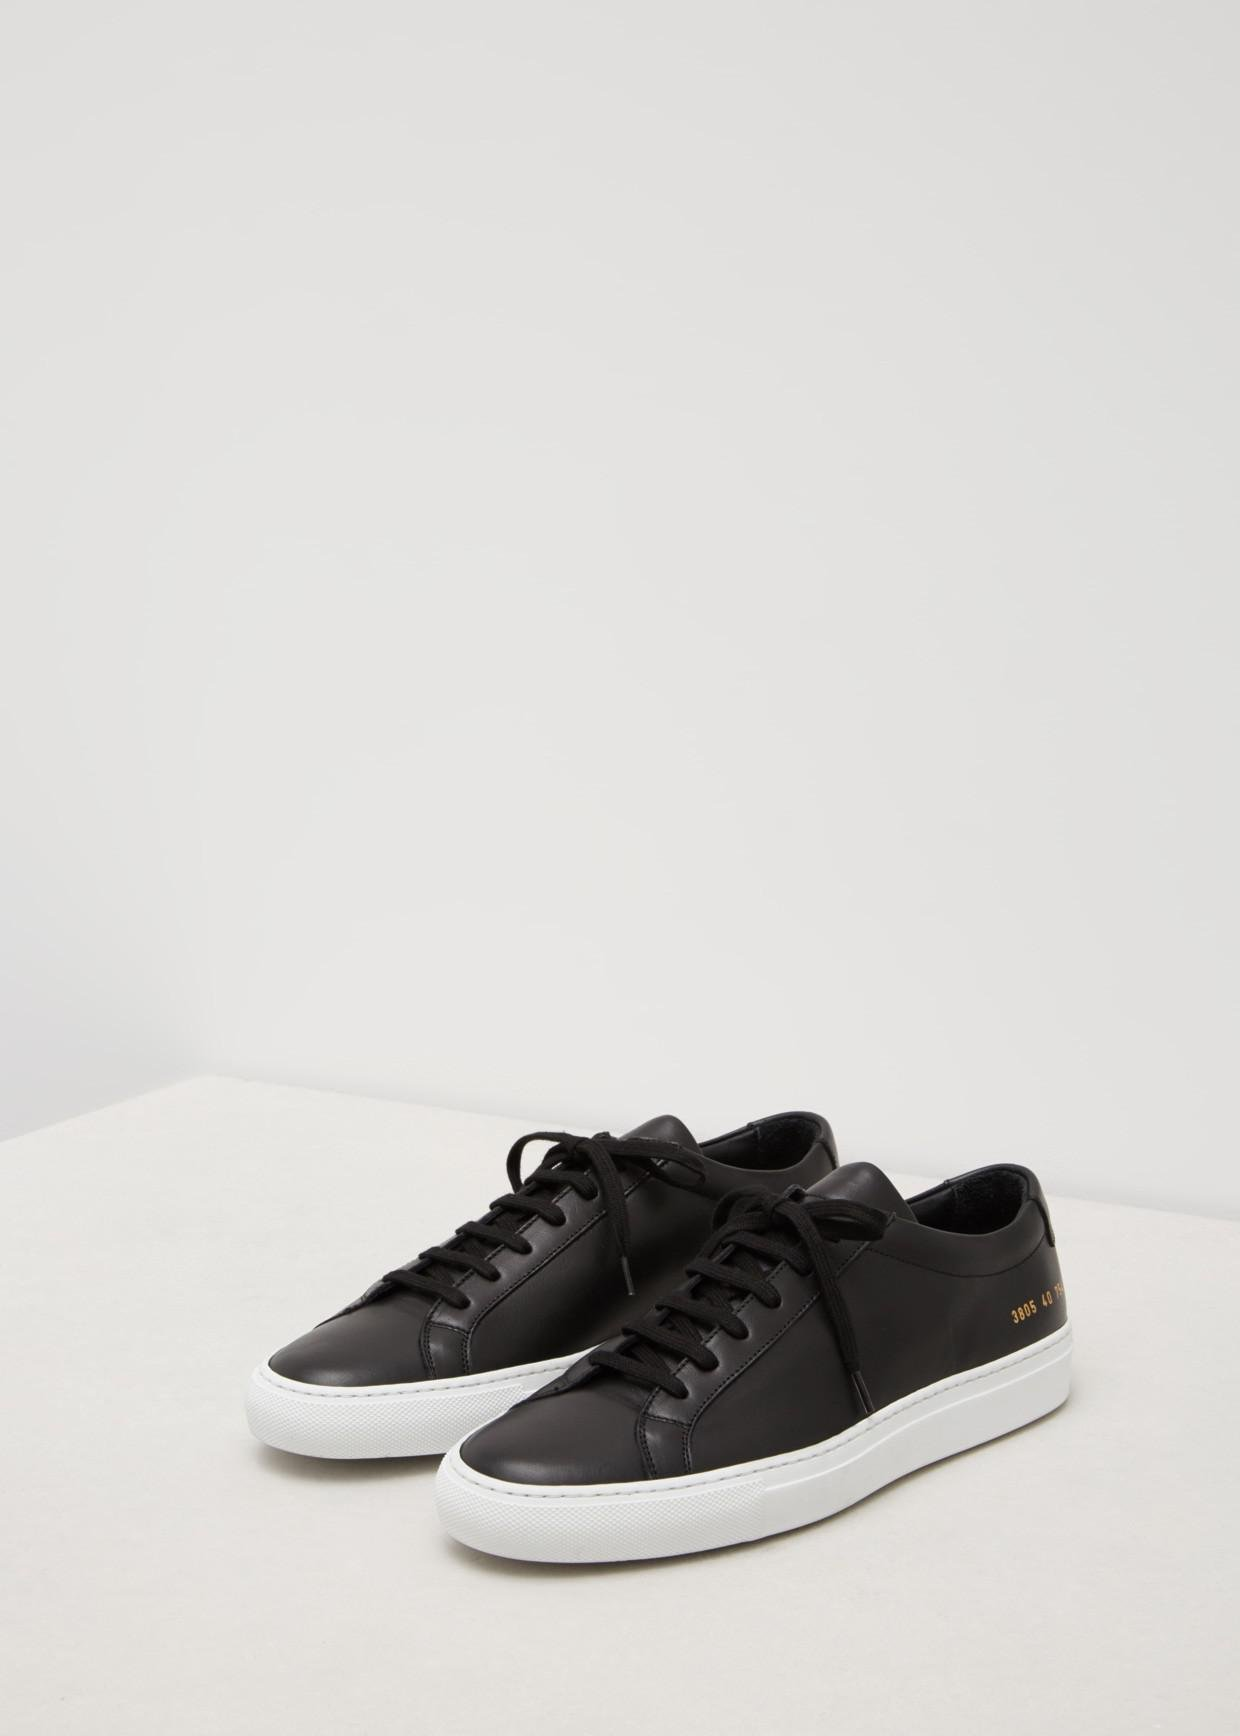 b5938a20fe496 Lyst - Common Projects Original Achilles Low White Sole in Black